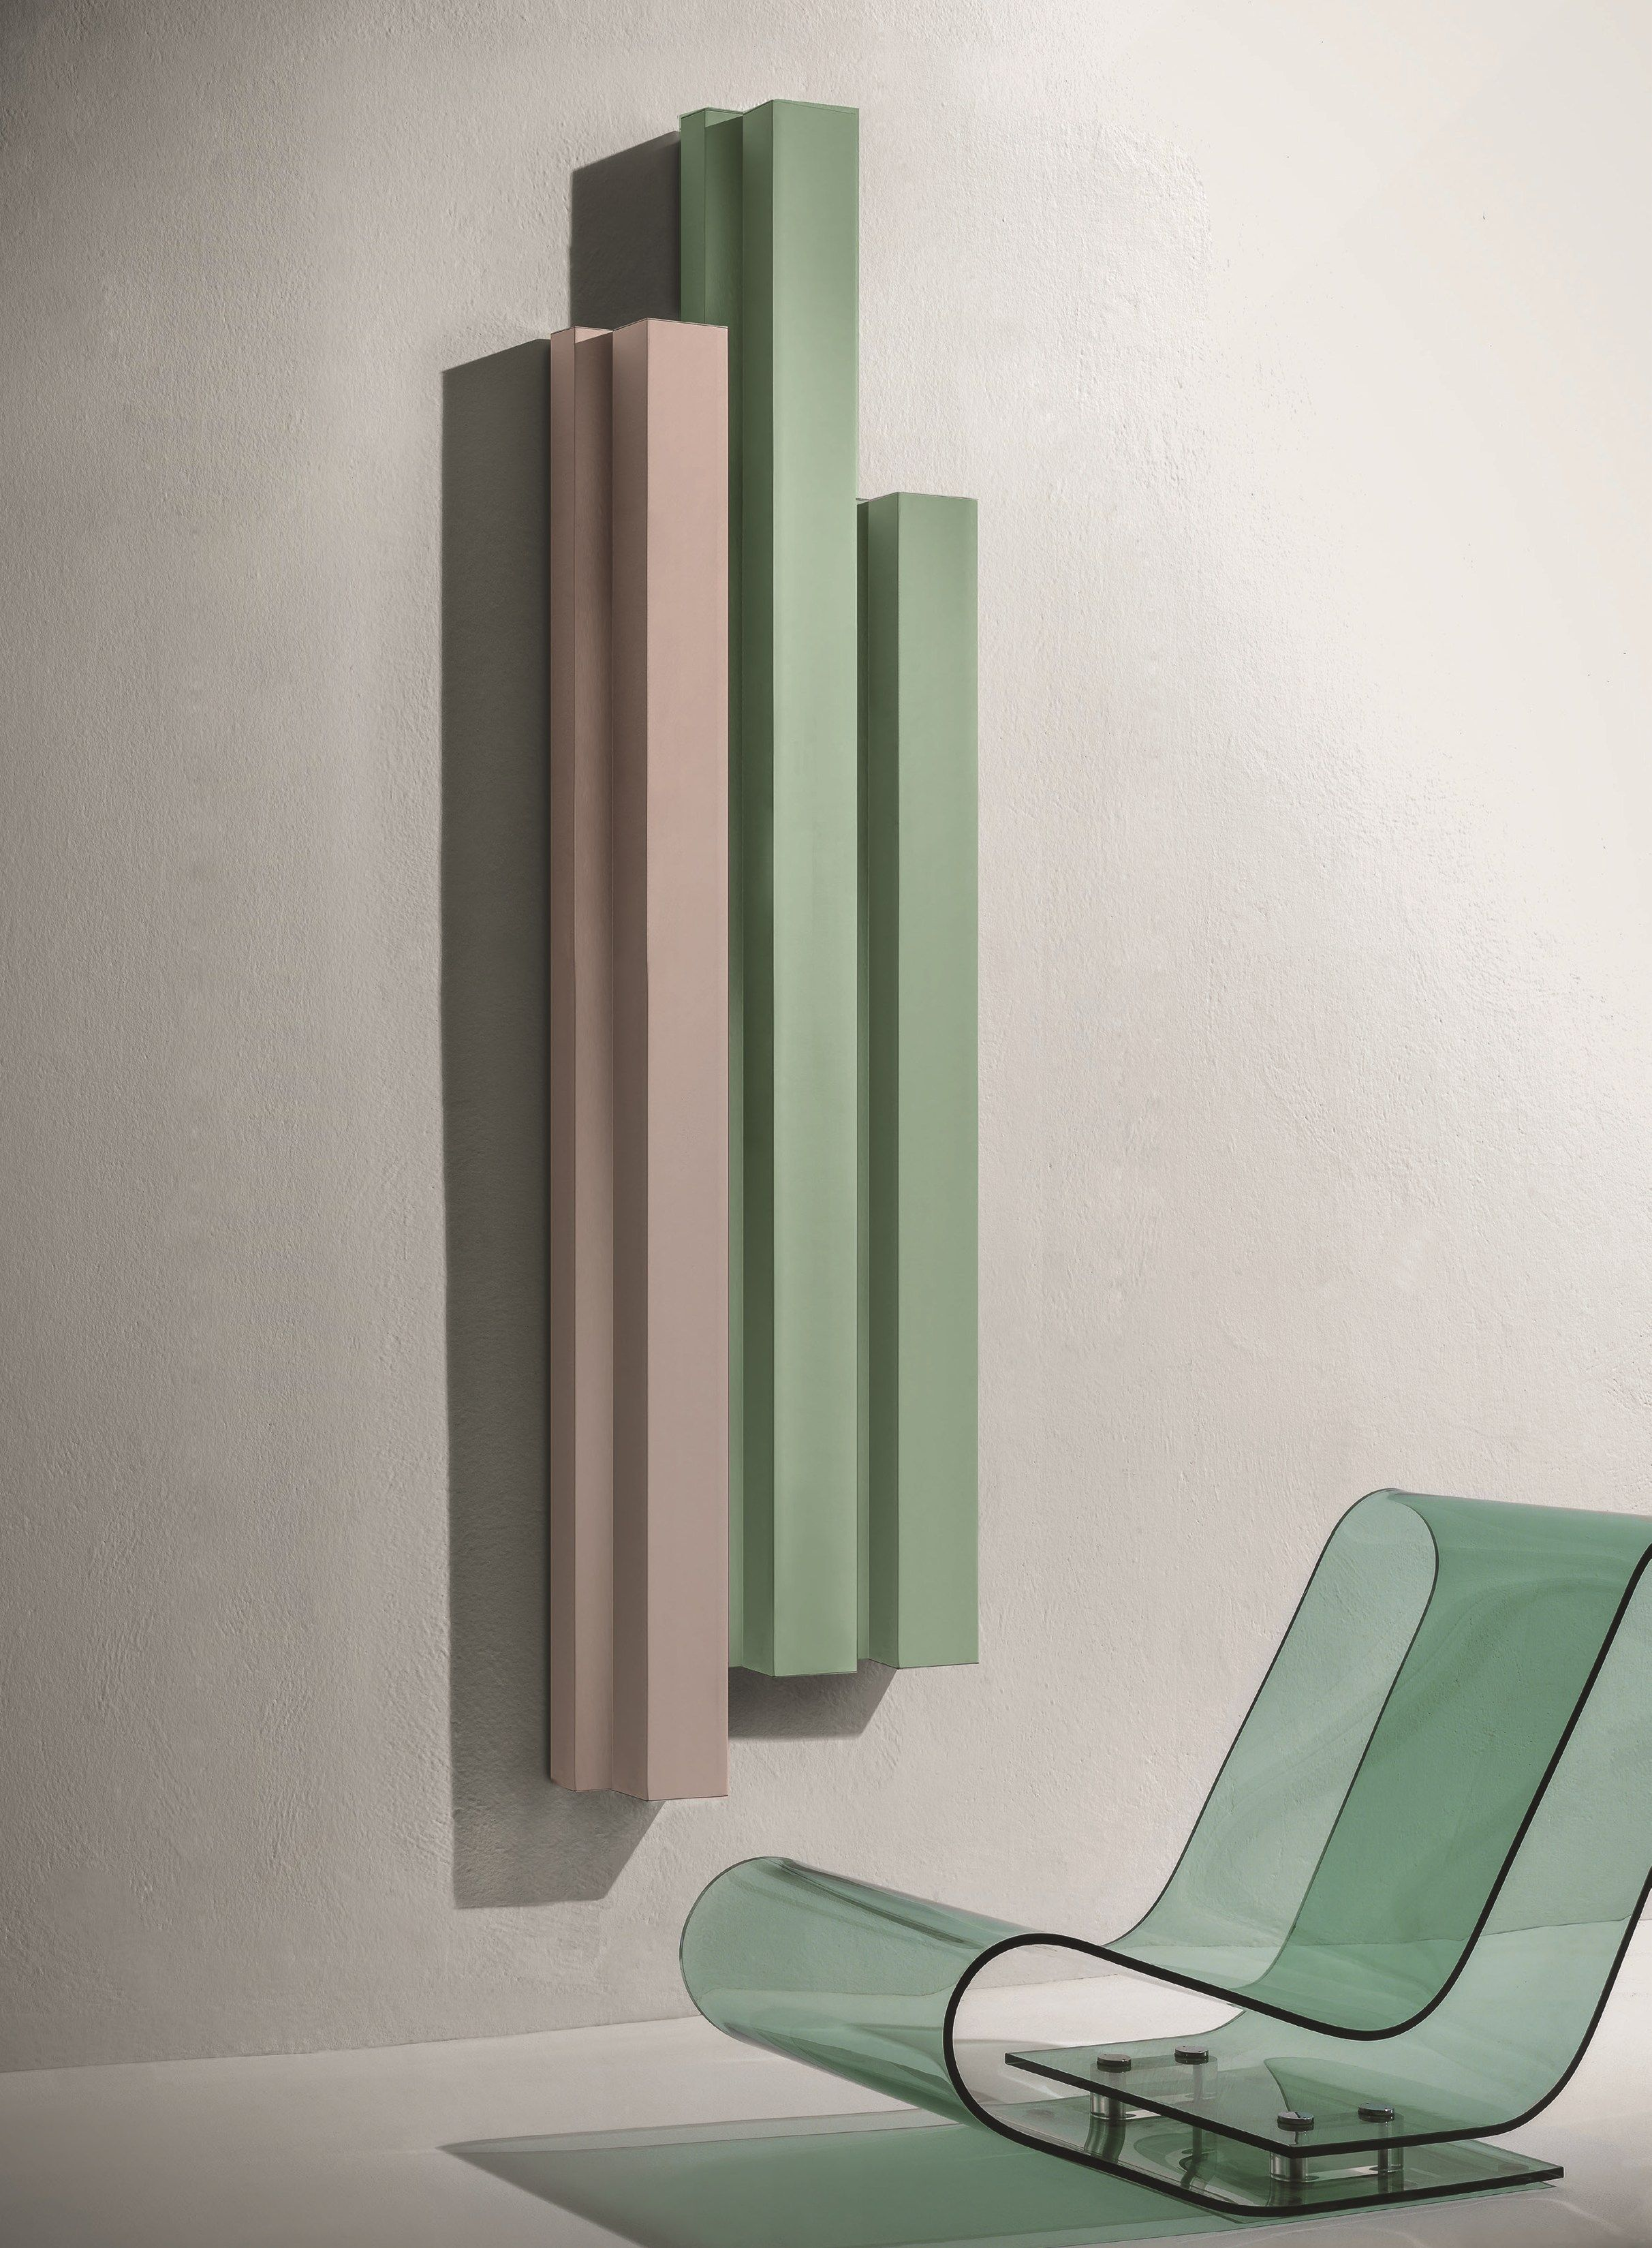 Hot Water Vertical Aluminium Decorative Radiator RIFT | Decorative Radiator  Elements Collection By Tubes Radiatori Design Ludovica+Roberto Palomba